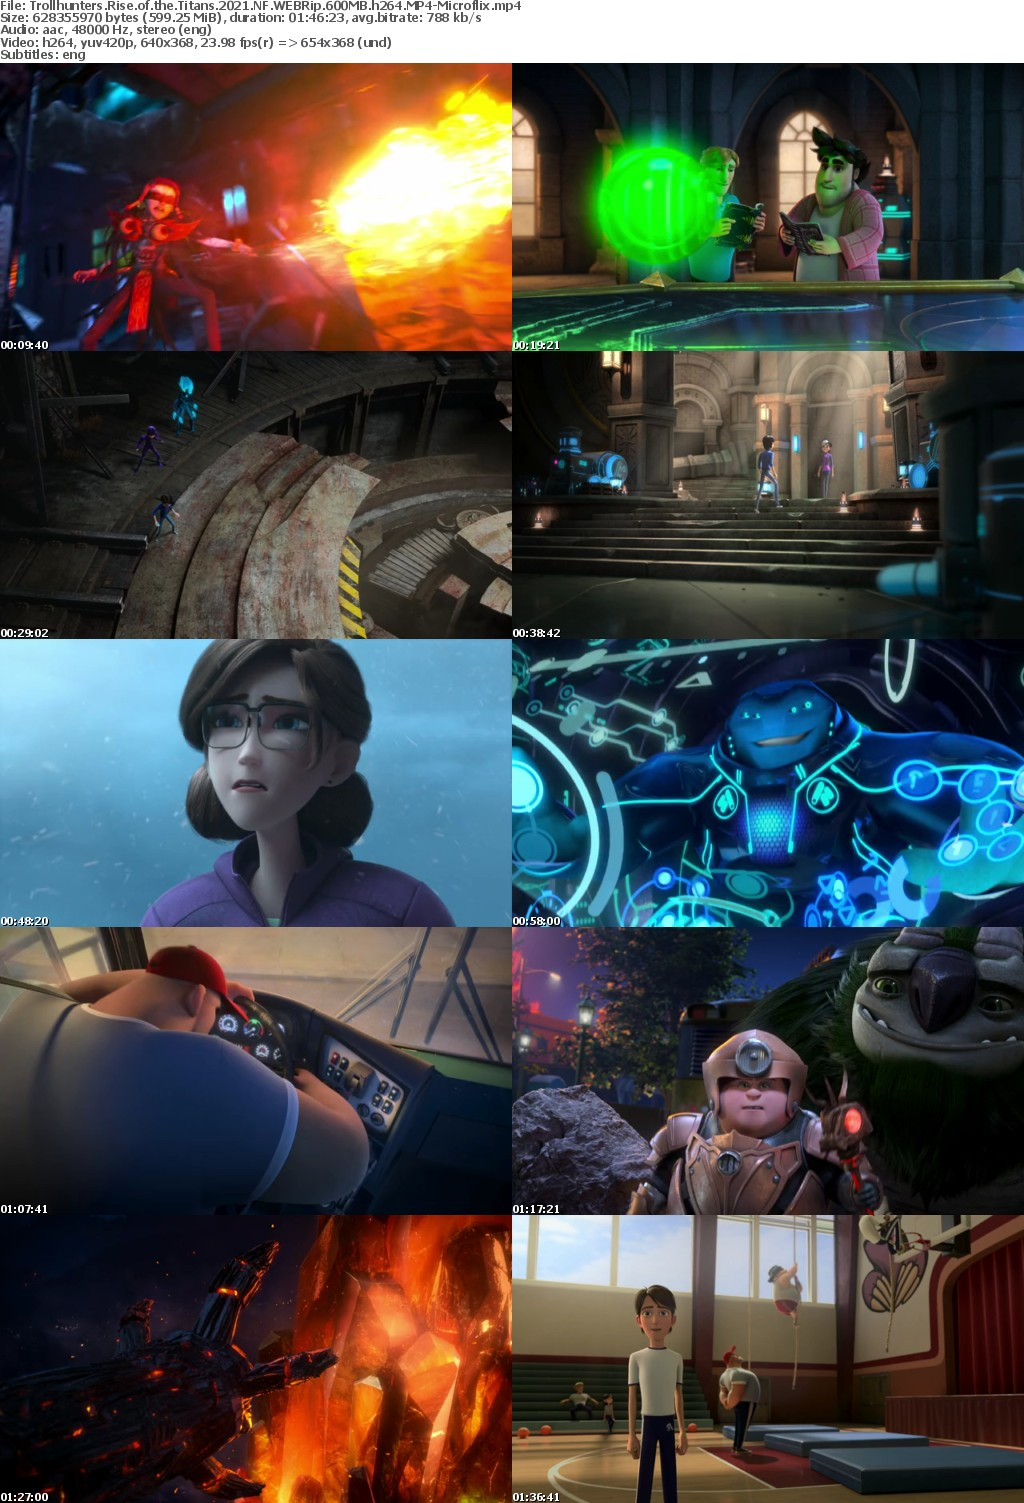 Trollhunters Rise of the Titans 2021 NF WEBRip 600MB h264 MP4-Microflix